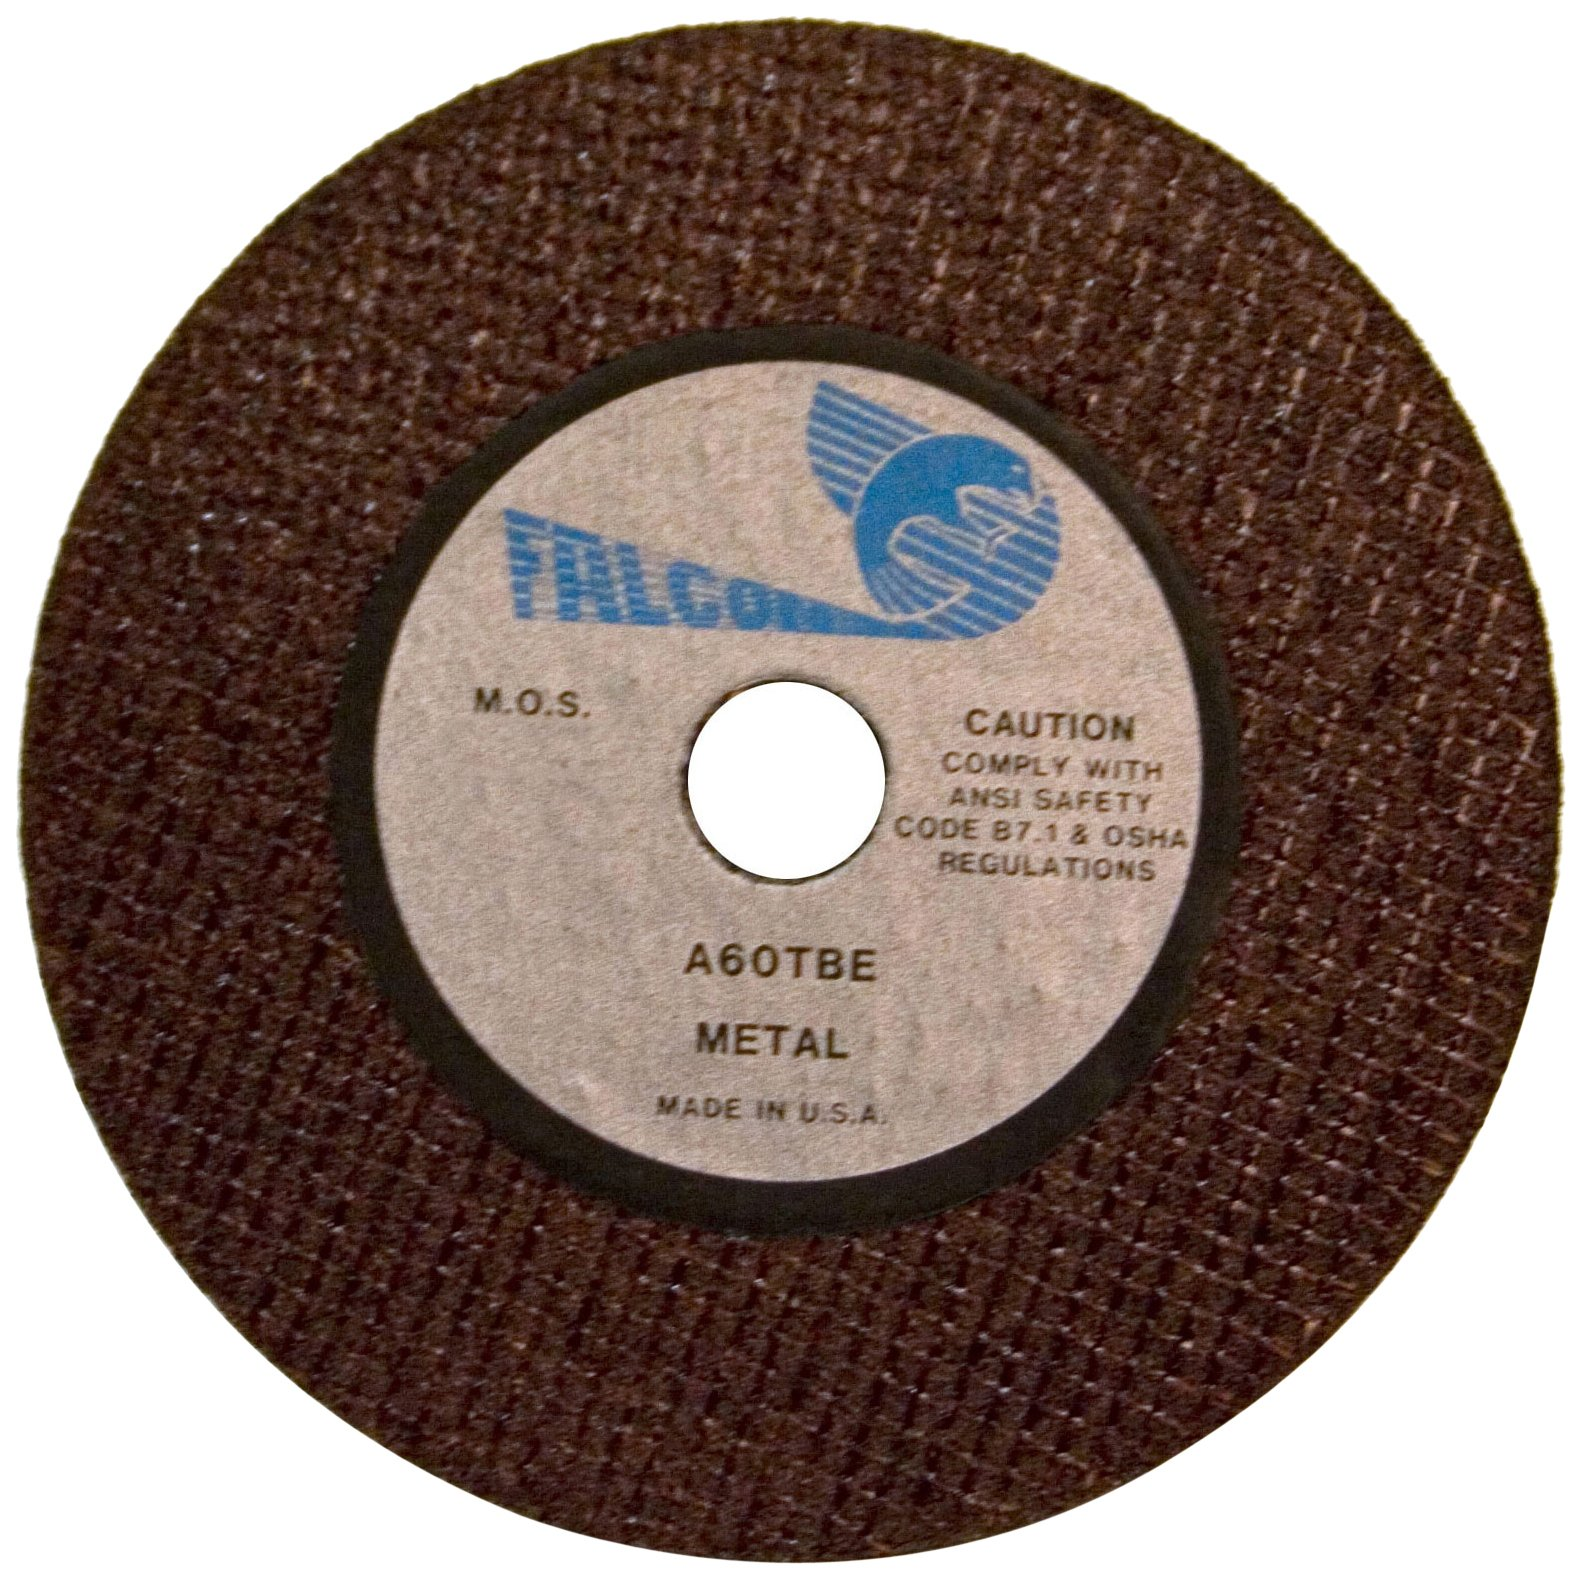 Falcon A60TBE Extra Tough Resinoid Bonded Double Reinforced Grinding and Snagging Abrasive Cut-off Wheel, Type 1, Aluminum Oxide, 1/4'' Hub, 2-1/2'' Diameter x 1/4'' Thickness, 60 Grit  (Pack of 5)